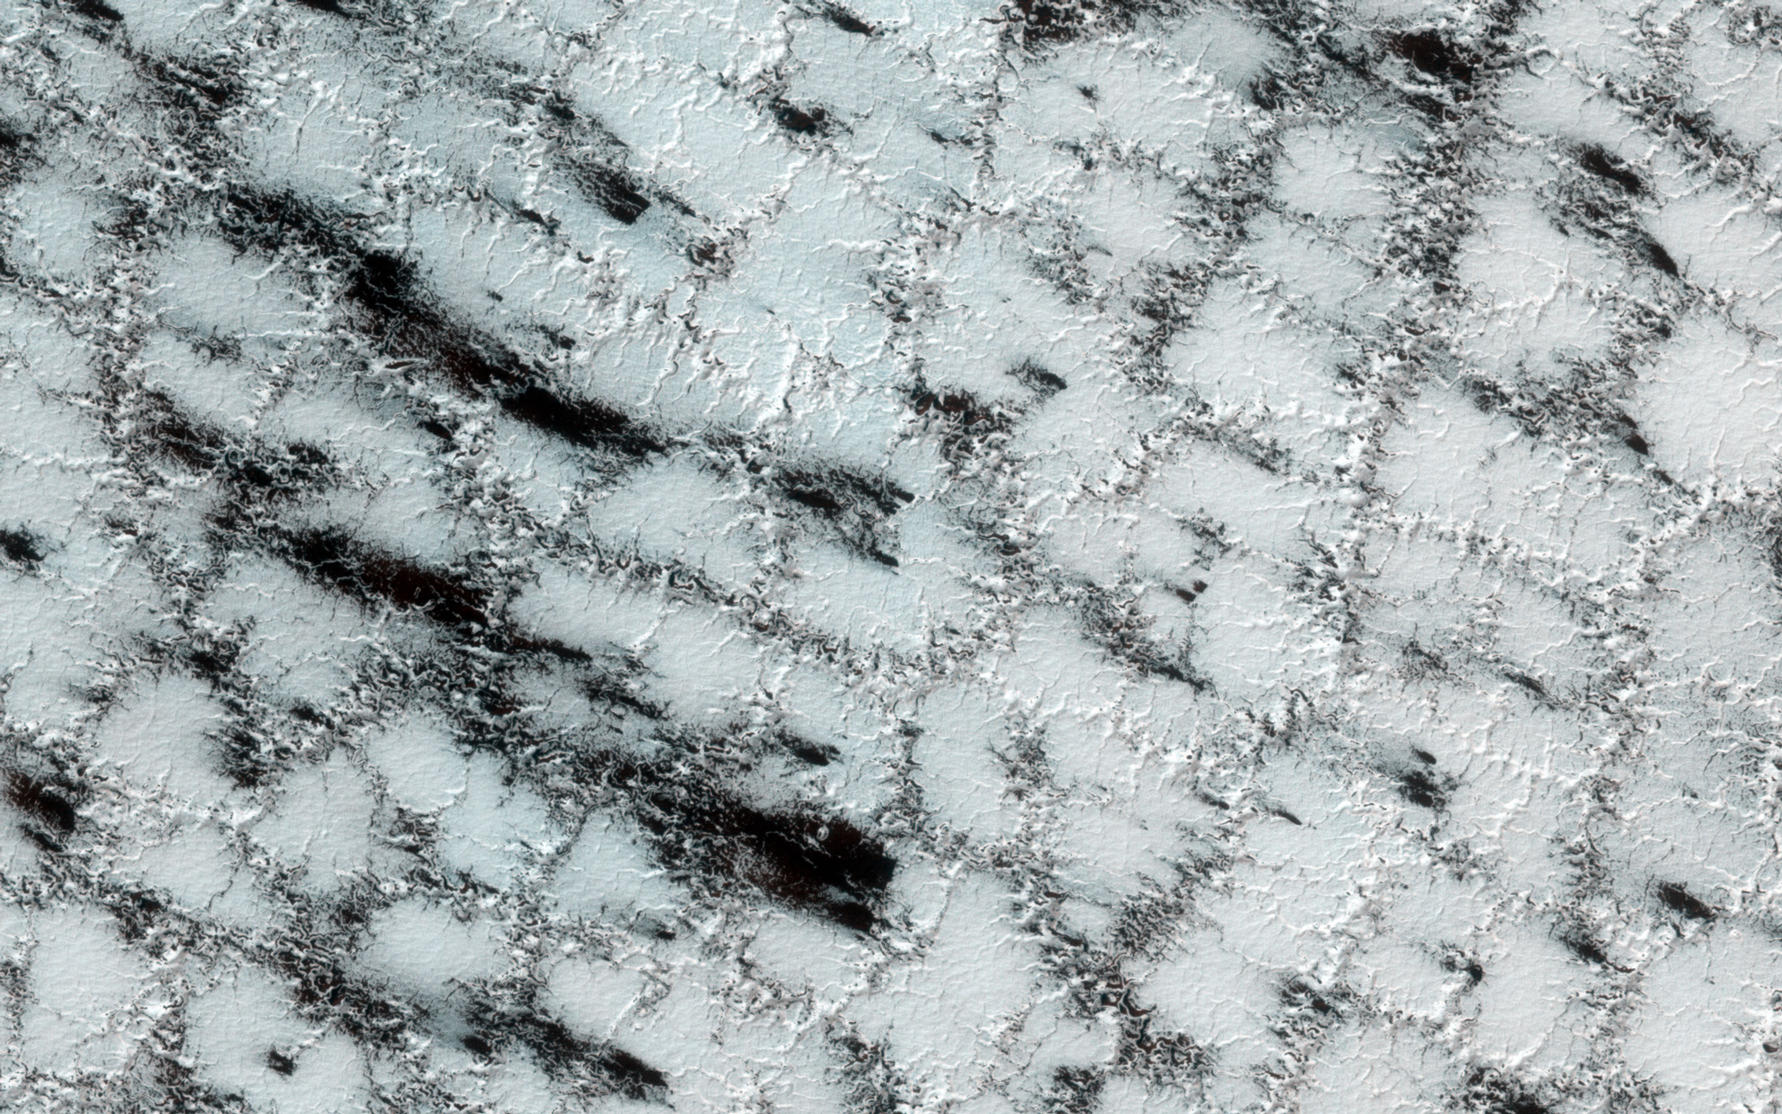 Although the season is late spring, carbon dioxide ice still covers much of the surface at this high latitude site.